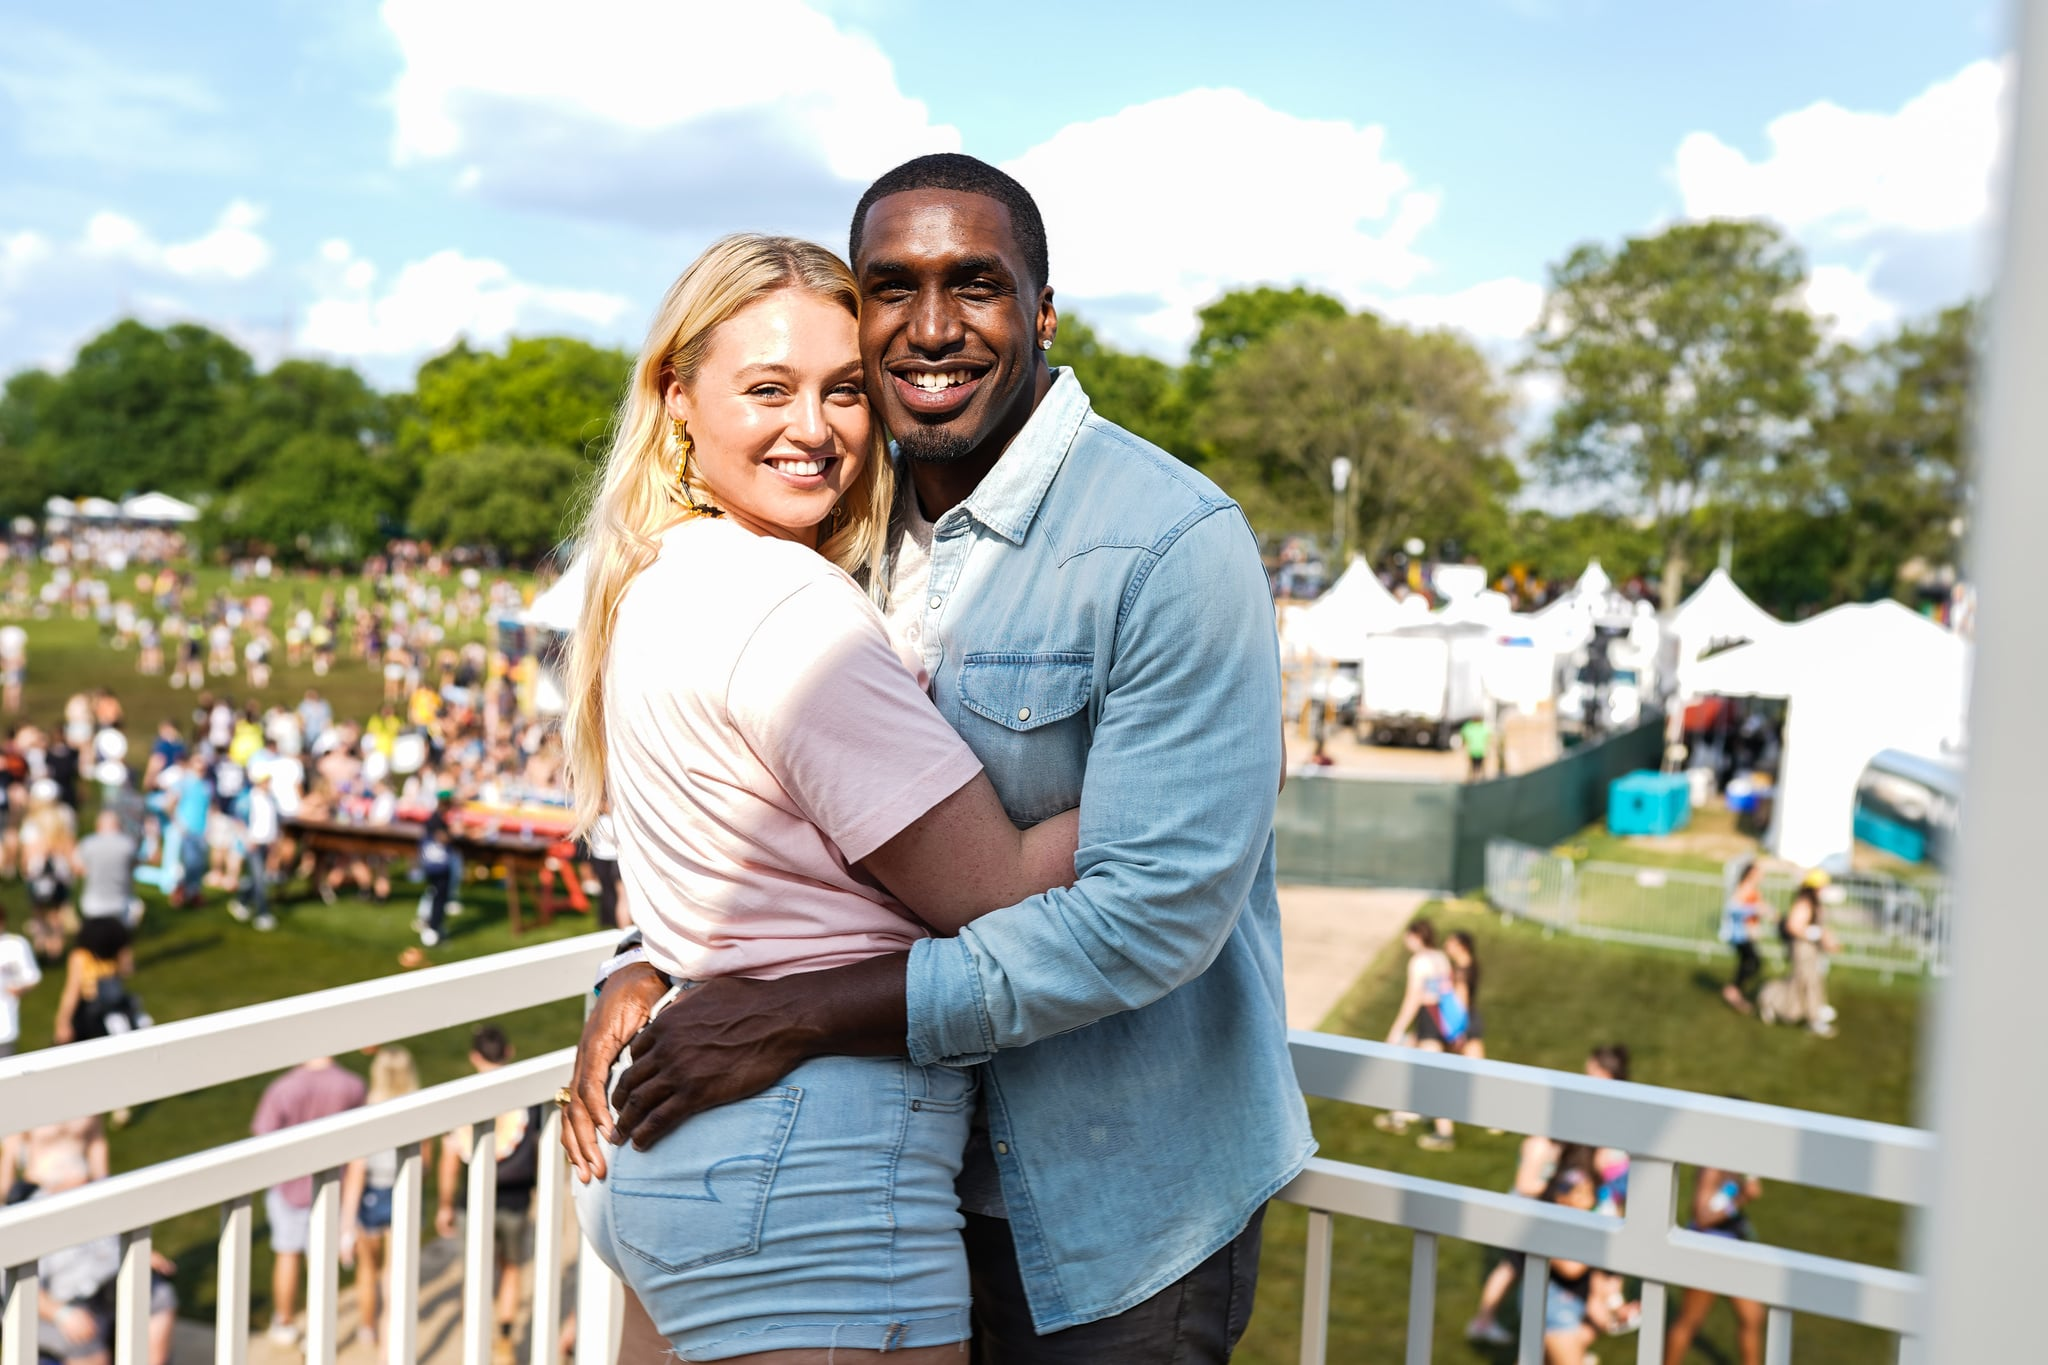 NEW YORK, NEW YORK - MAY 31:  (L-R)  Iskra Lawrence and Philip Payne during the American Eagle At NYC's Governors Ball 2019 at Randall's Island on May 31, 2019 in New York City. (Photo by Gonzalo Marroquin/Getty Images for American Eagle)